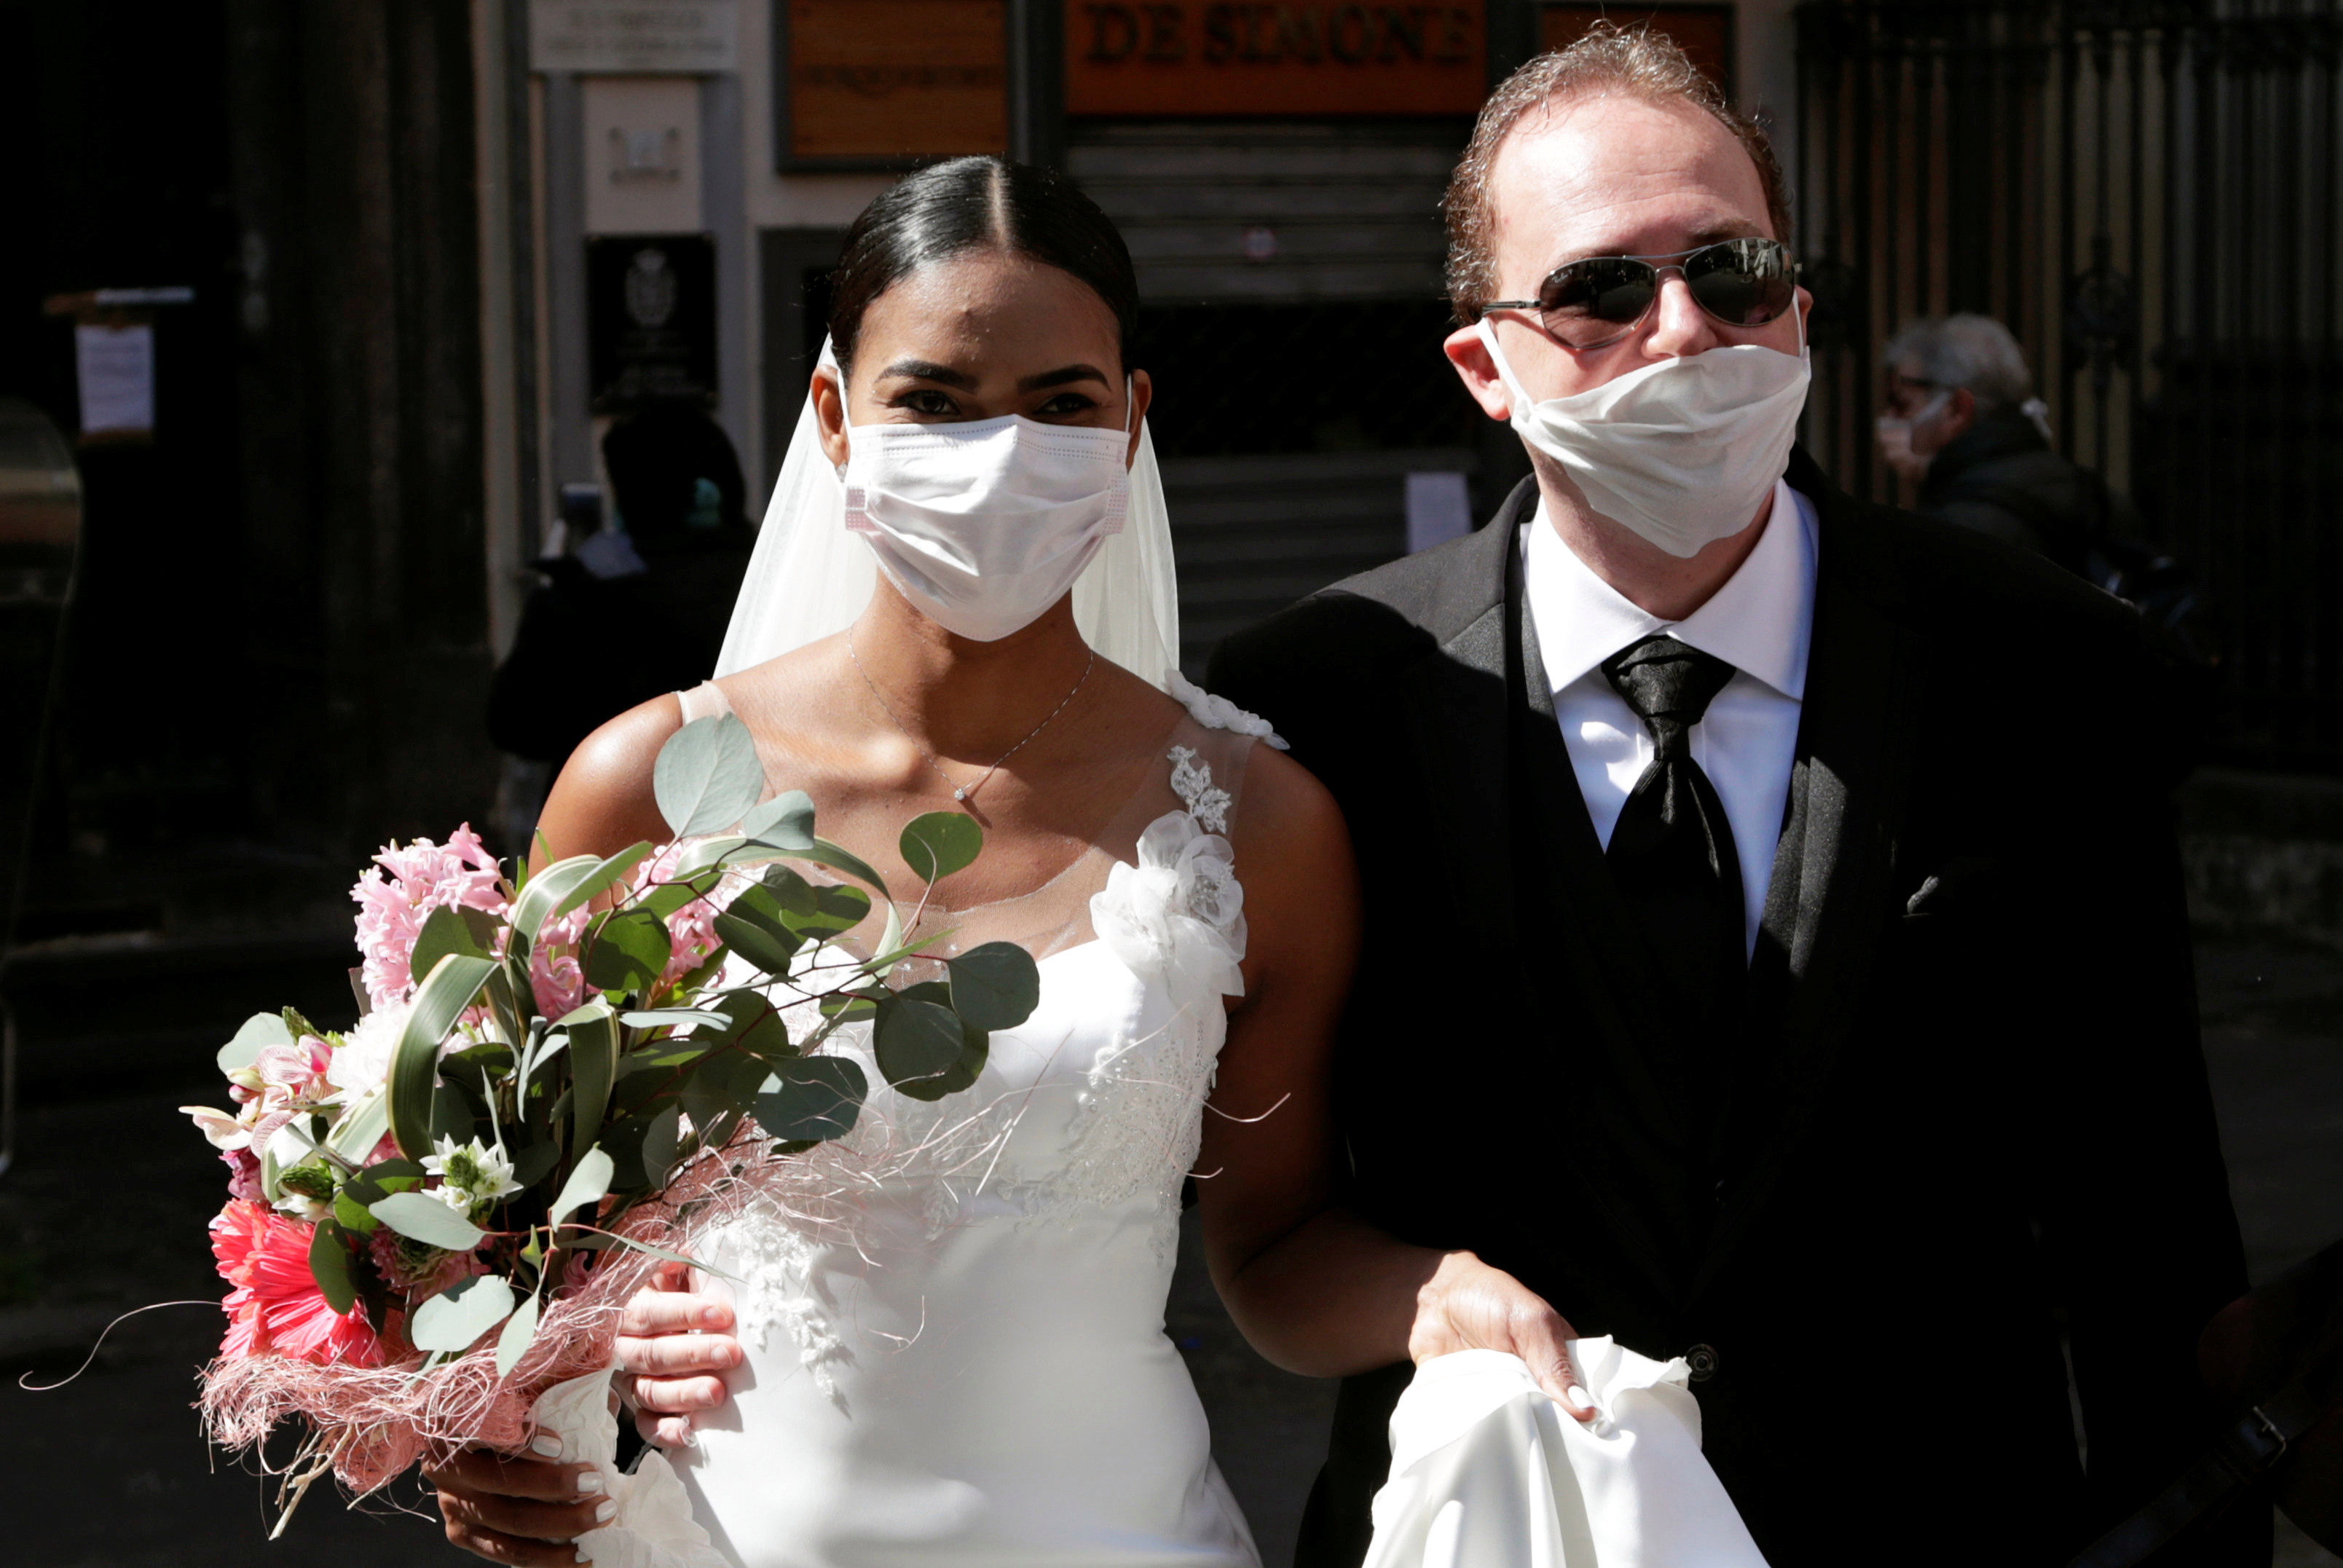 The pair donned face masks for their unconventional wedding snaps